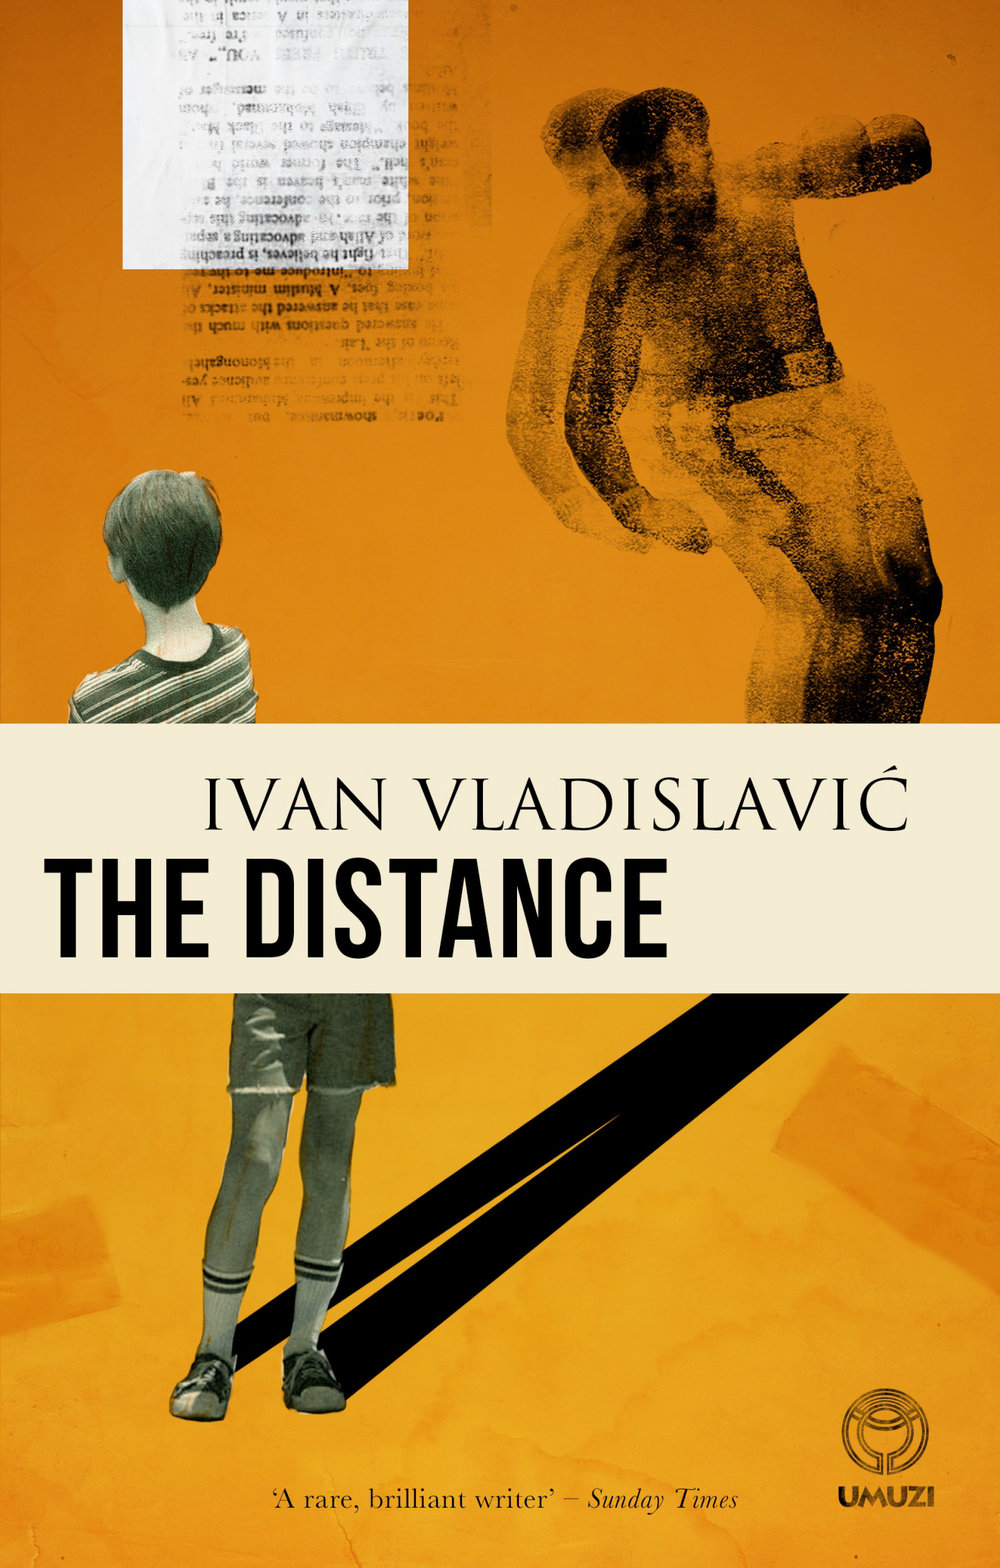 THE DISTANCE  Literary, 272 pages Random House SA, Feb 2019  A novel on one level about boxing and a writer's boyhood obsession with Cassius Clay, who became Muhammad Ali, the novel opens up into an unforgettable work on collecting, brotherhood, growing up & the art of writing itself. A multi-layered work, told in the wry voice of a man observing & remembering his younger brother's fascination with Ali, the novel evokes the power of the boxing ring and the creation of a legend. Deftly, delicately, but with cumulative power, the novel also explores youth & aging, strength & disease, and, of course, questions of race, faith, and politics.